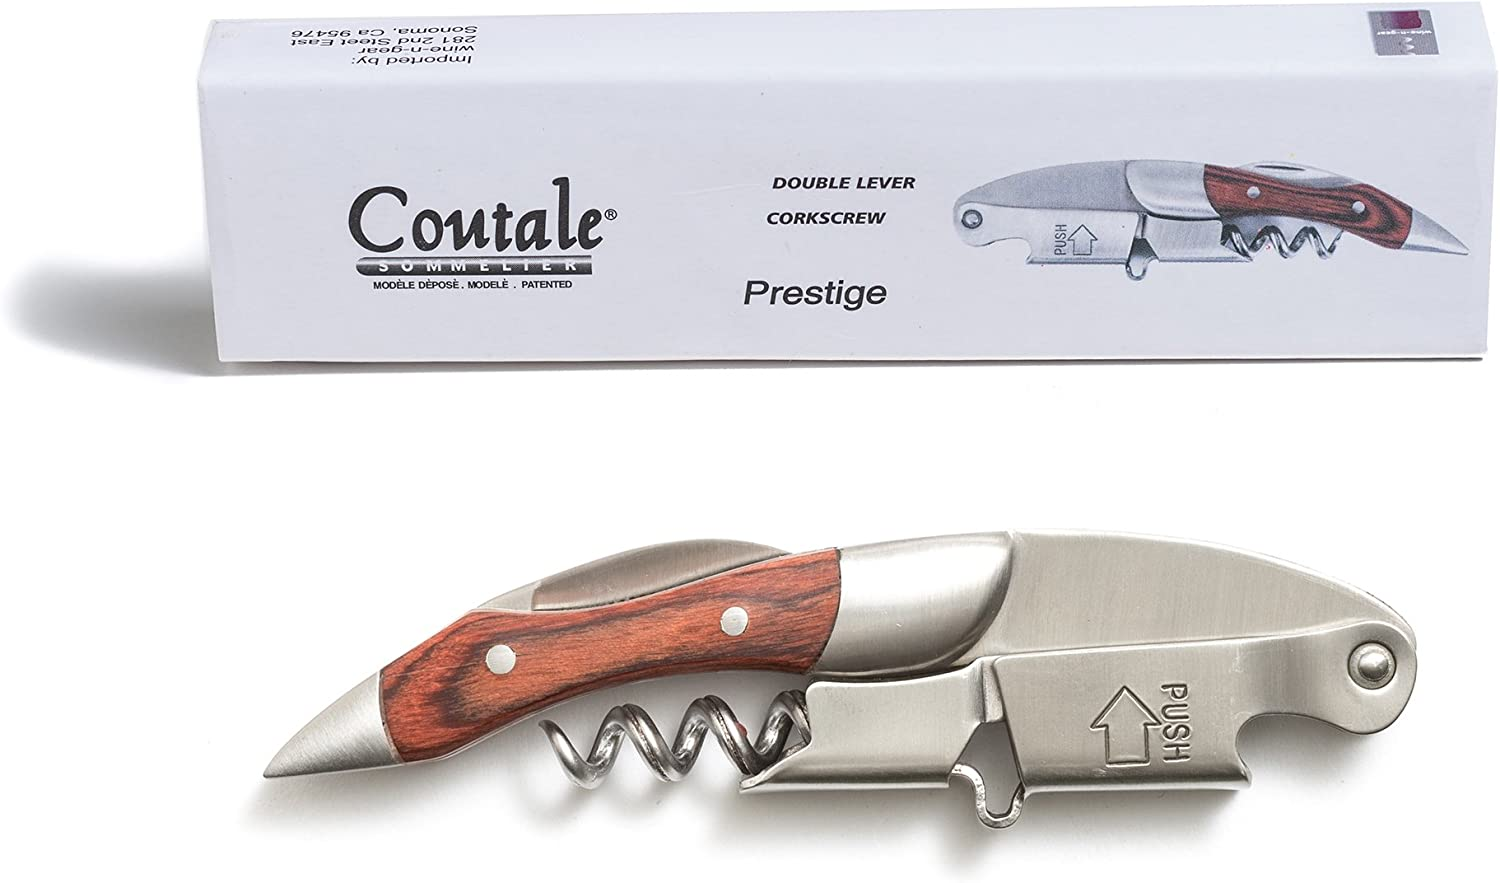 Prestige Waiters Corkscrew By Coutale Sommelier - Rosewood - French Patented Spring-Loaded Double Lever Wine Bottle Opener for Bartenders and Gifts